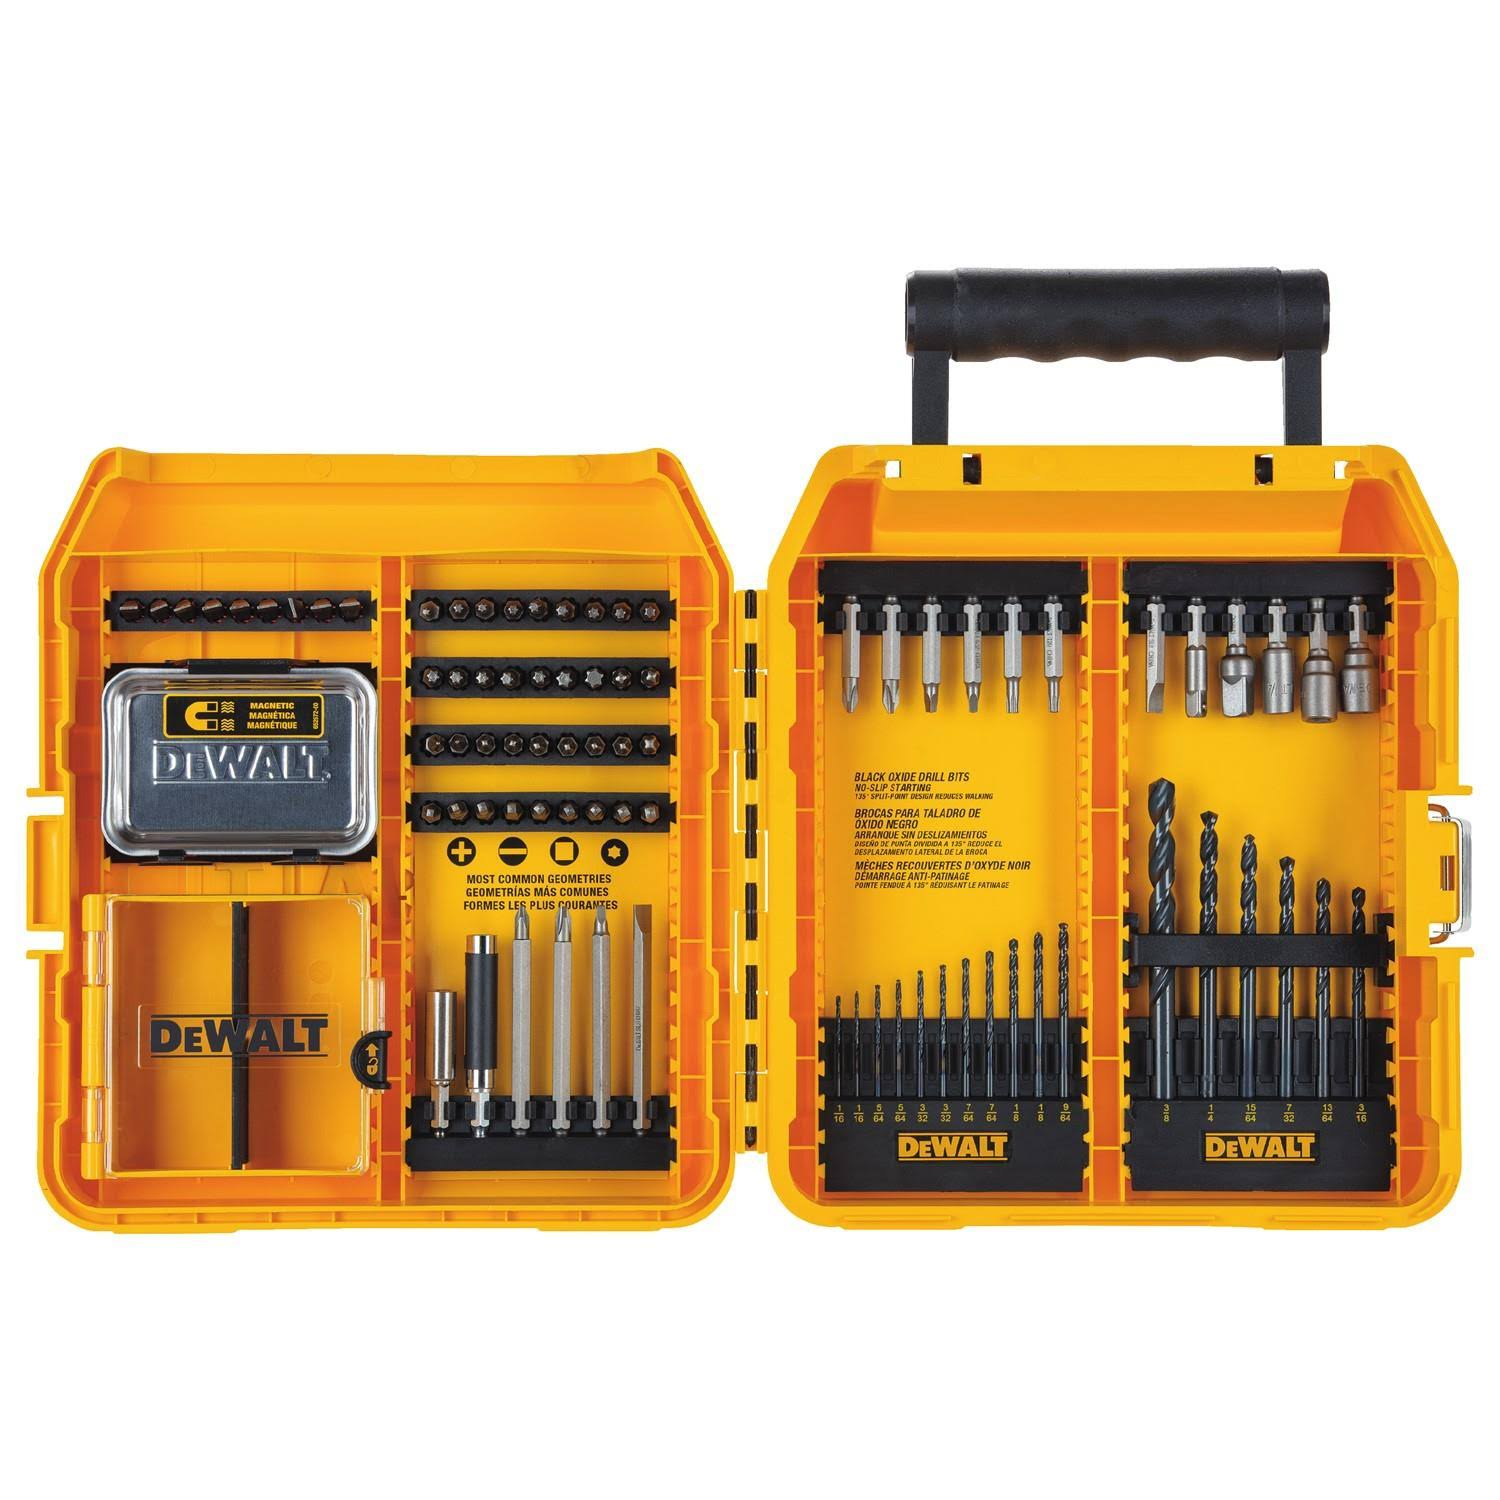 Dewalt Drill And Drive Set - 80 Pieces